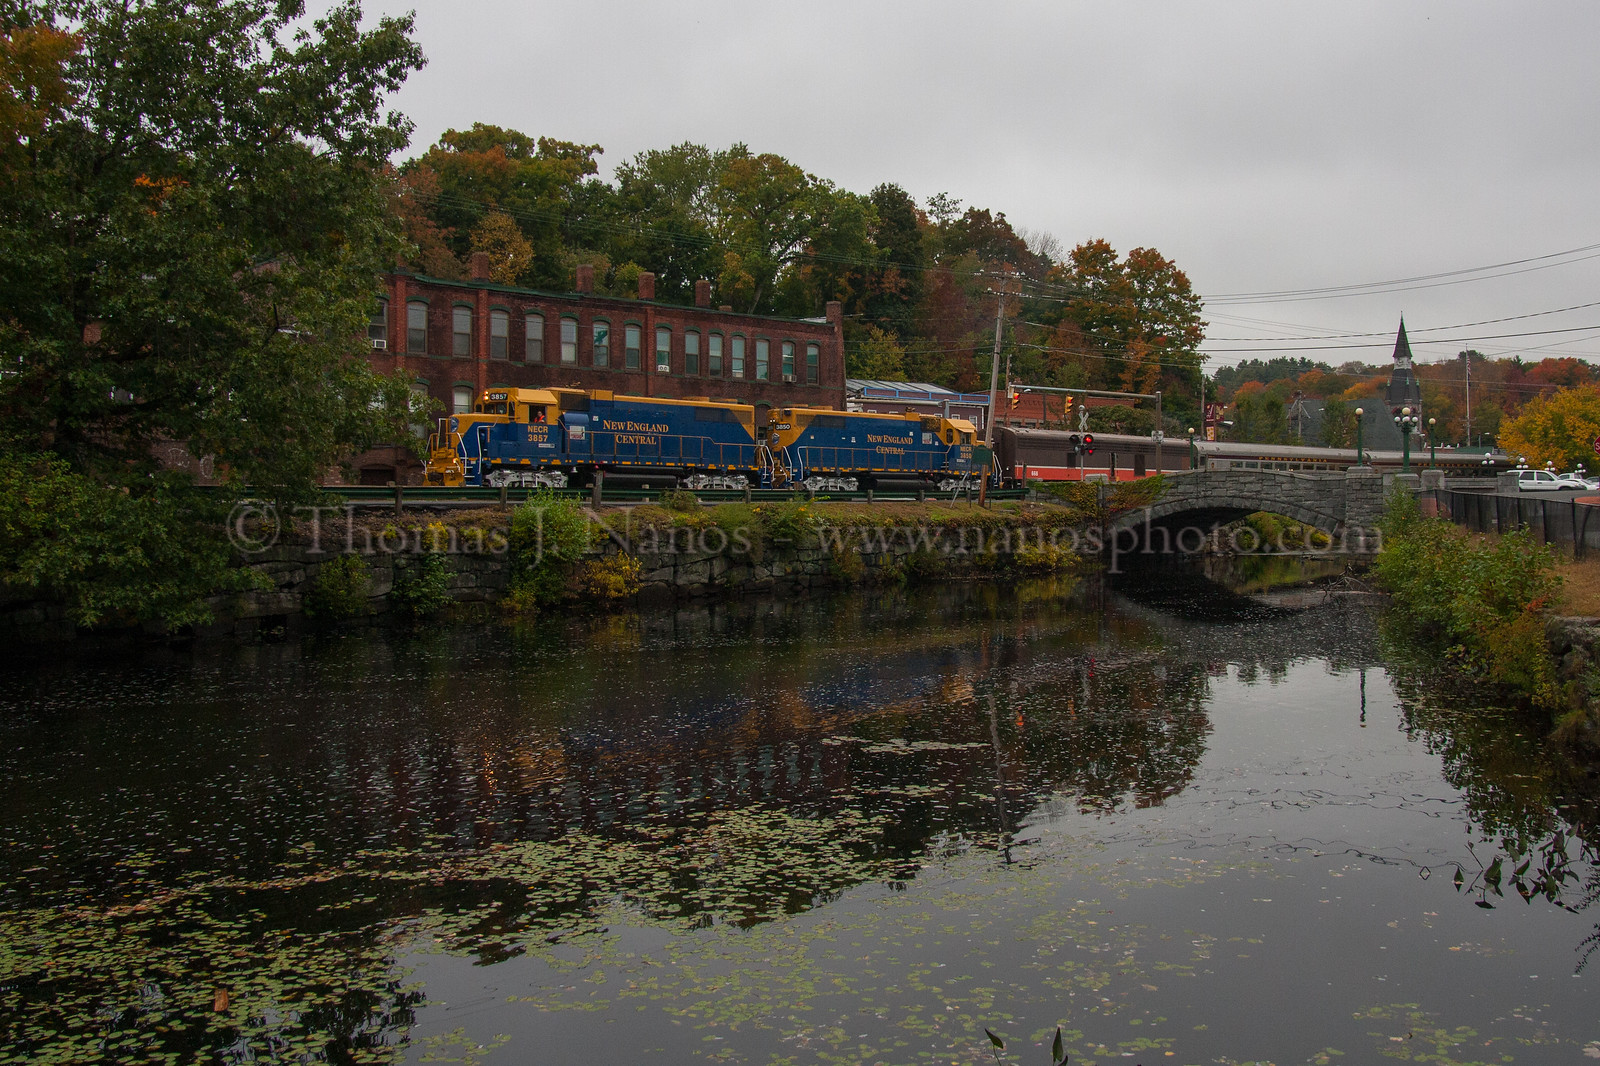 The Central Corridor Rail Coalition special on the New England Central Railroad passing through Stafford Springs, CT.  10/4/2012